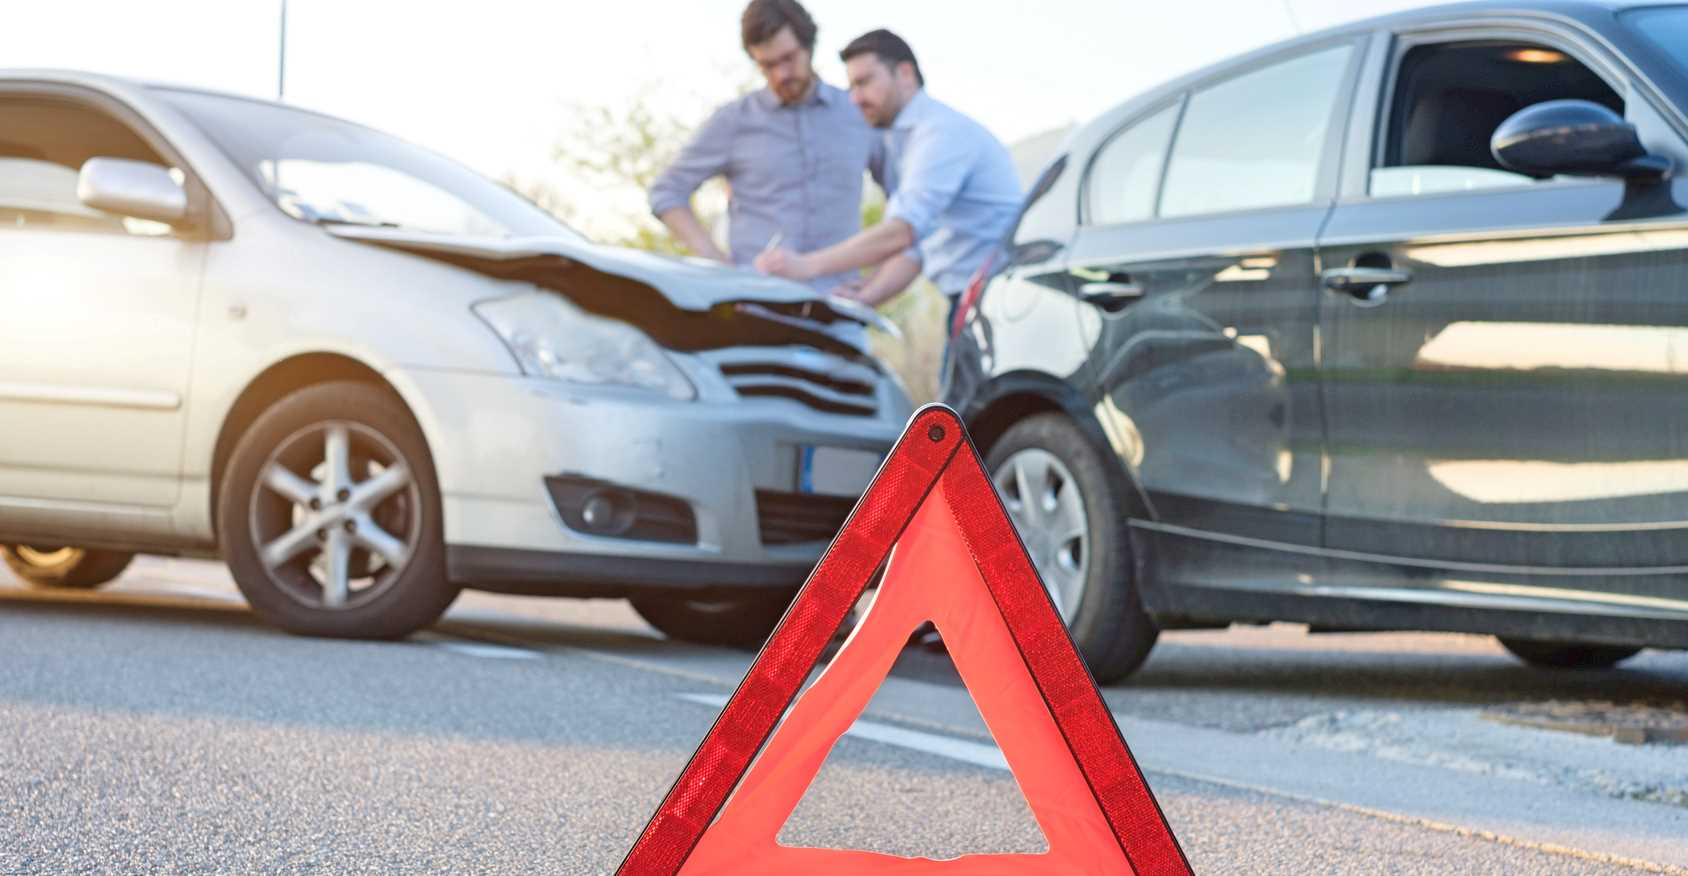 Car Accident Law Firm Near Me